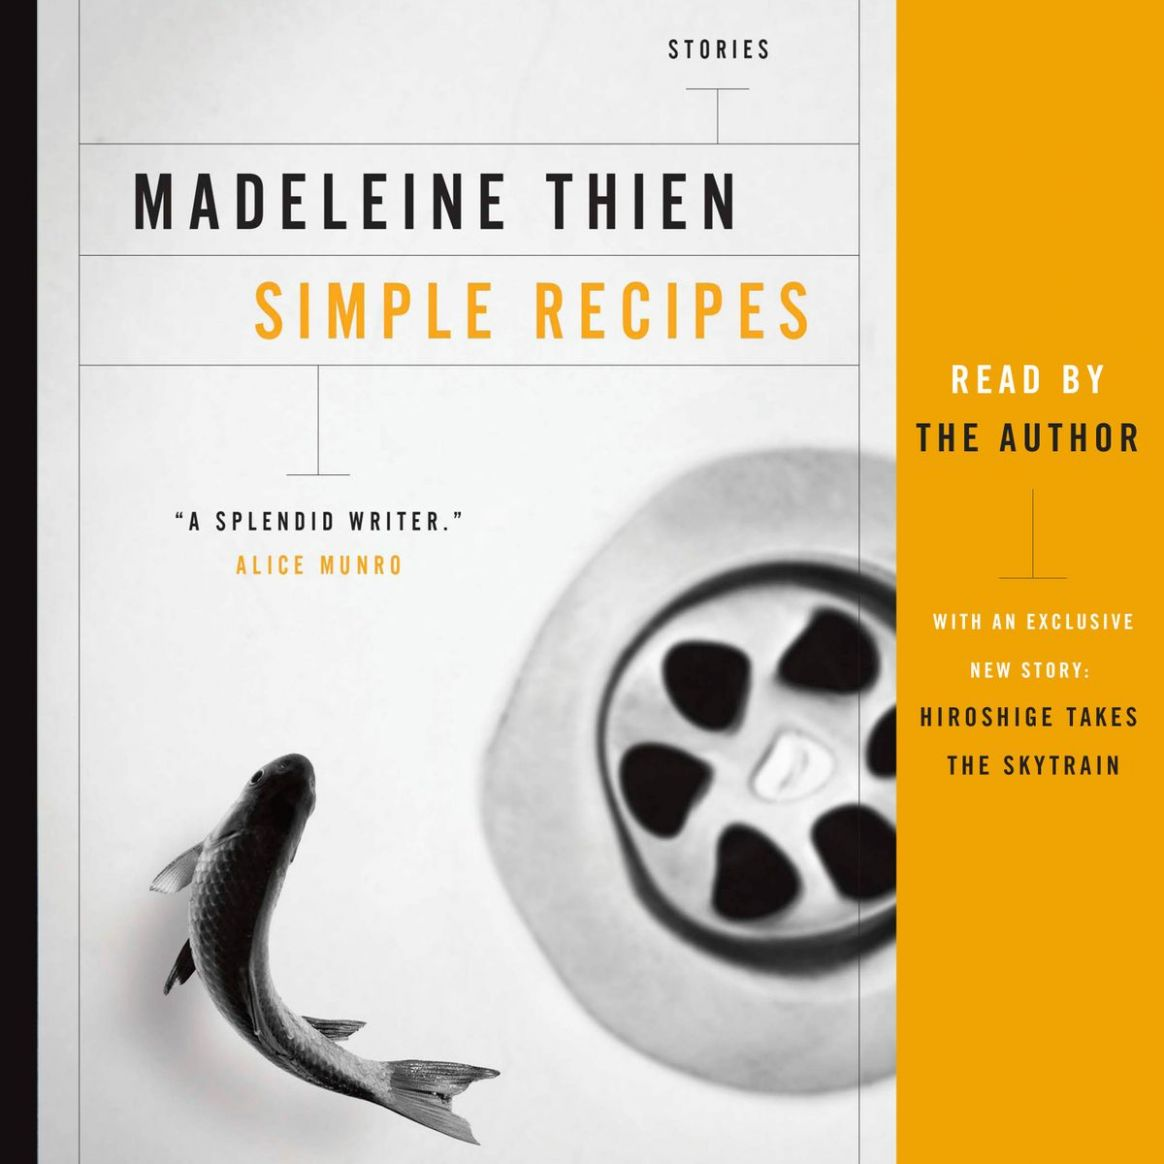 Simple Recipes audiobook by Madeleine Thien - Rakuten Kobo - Simple Recipes Madeleine Thien Summary